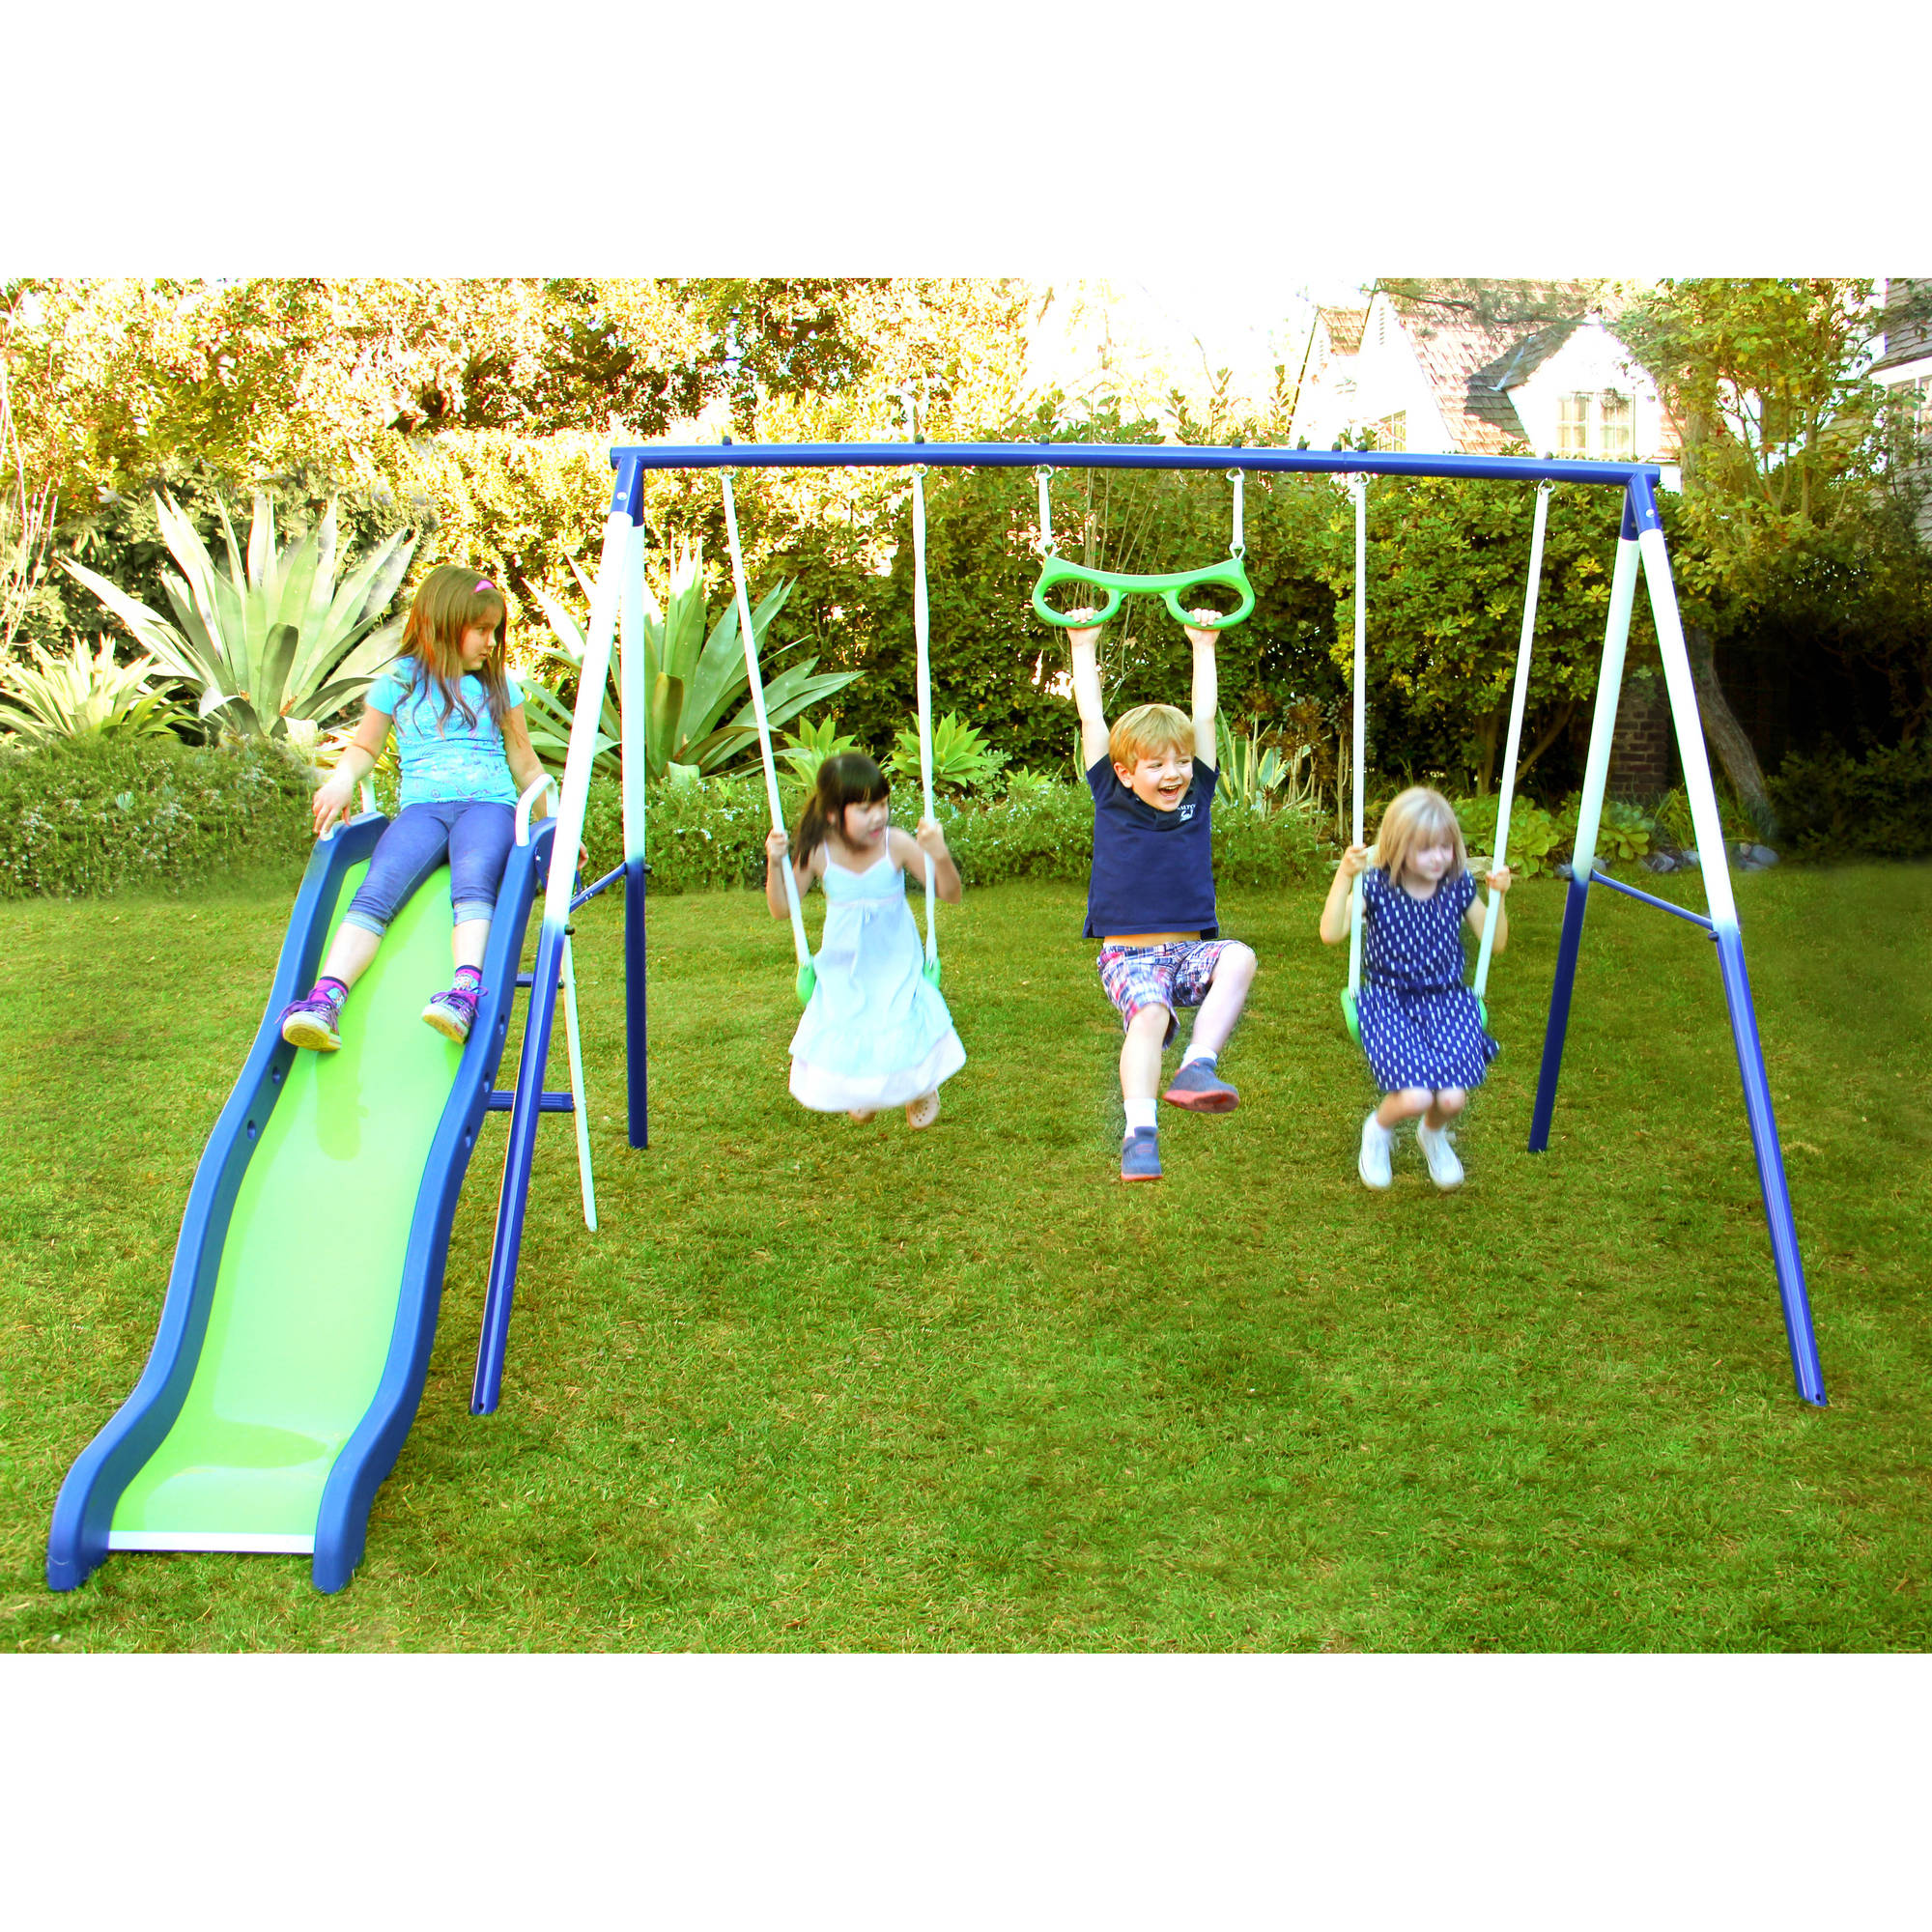 Sportspower Sierra Vista Metal Swing and Slide Set Walmart